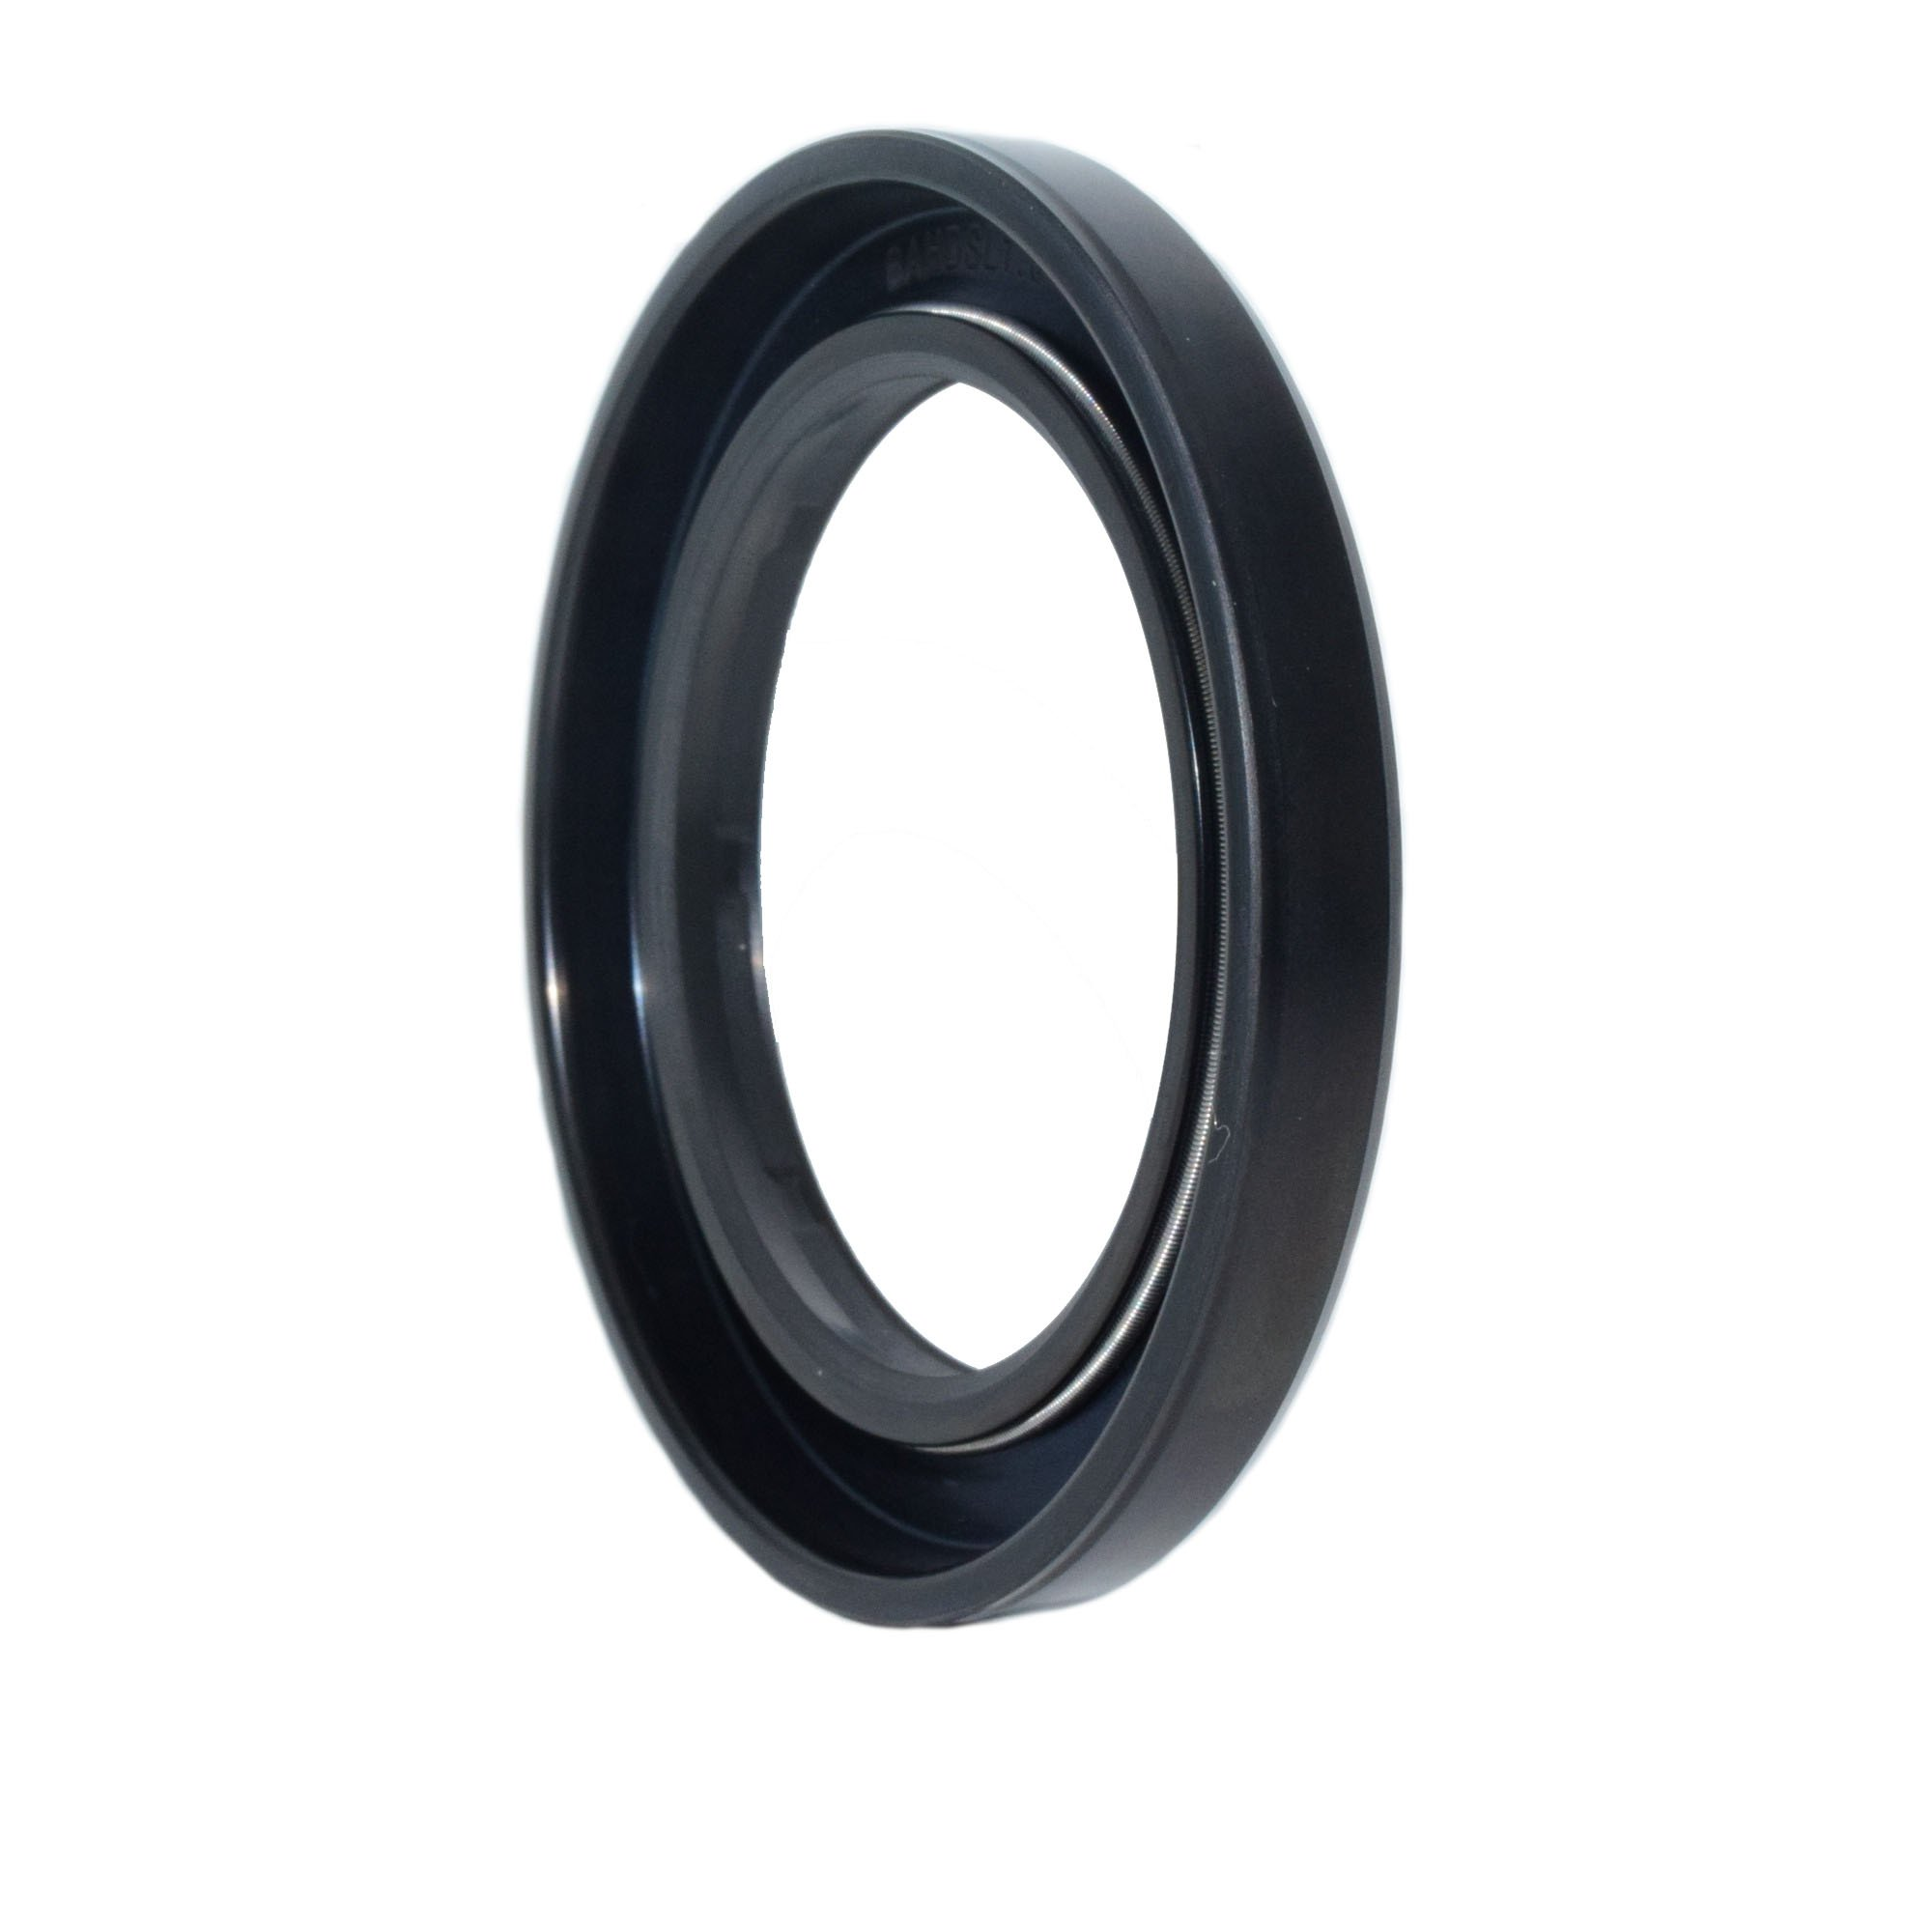 BAHDSL1.5 50X72X8/6mm NBR High Pressure Rotary Shaft Metric Oil Seal for Hydraulic Pump Motor